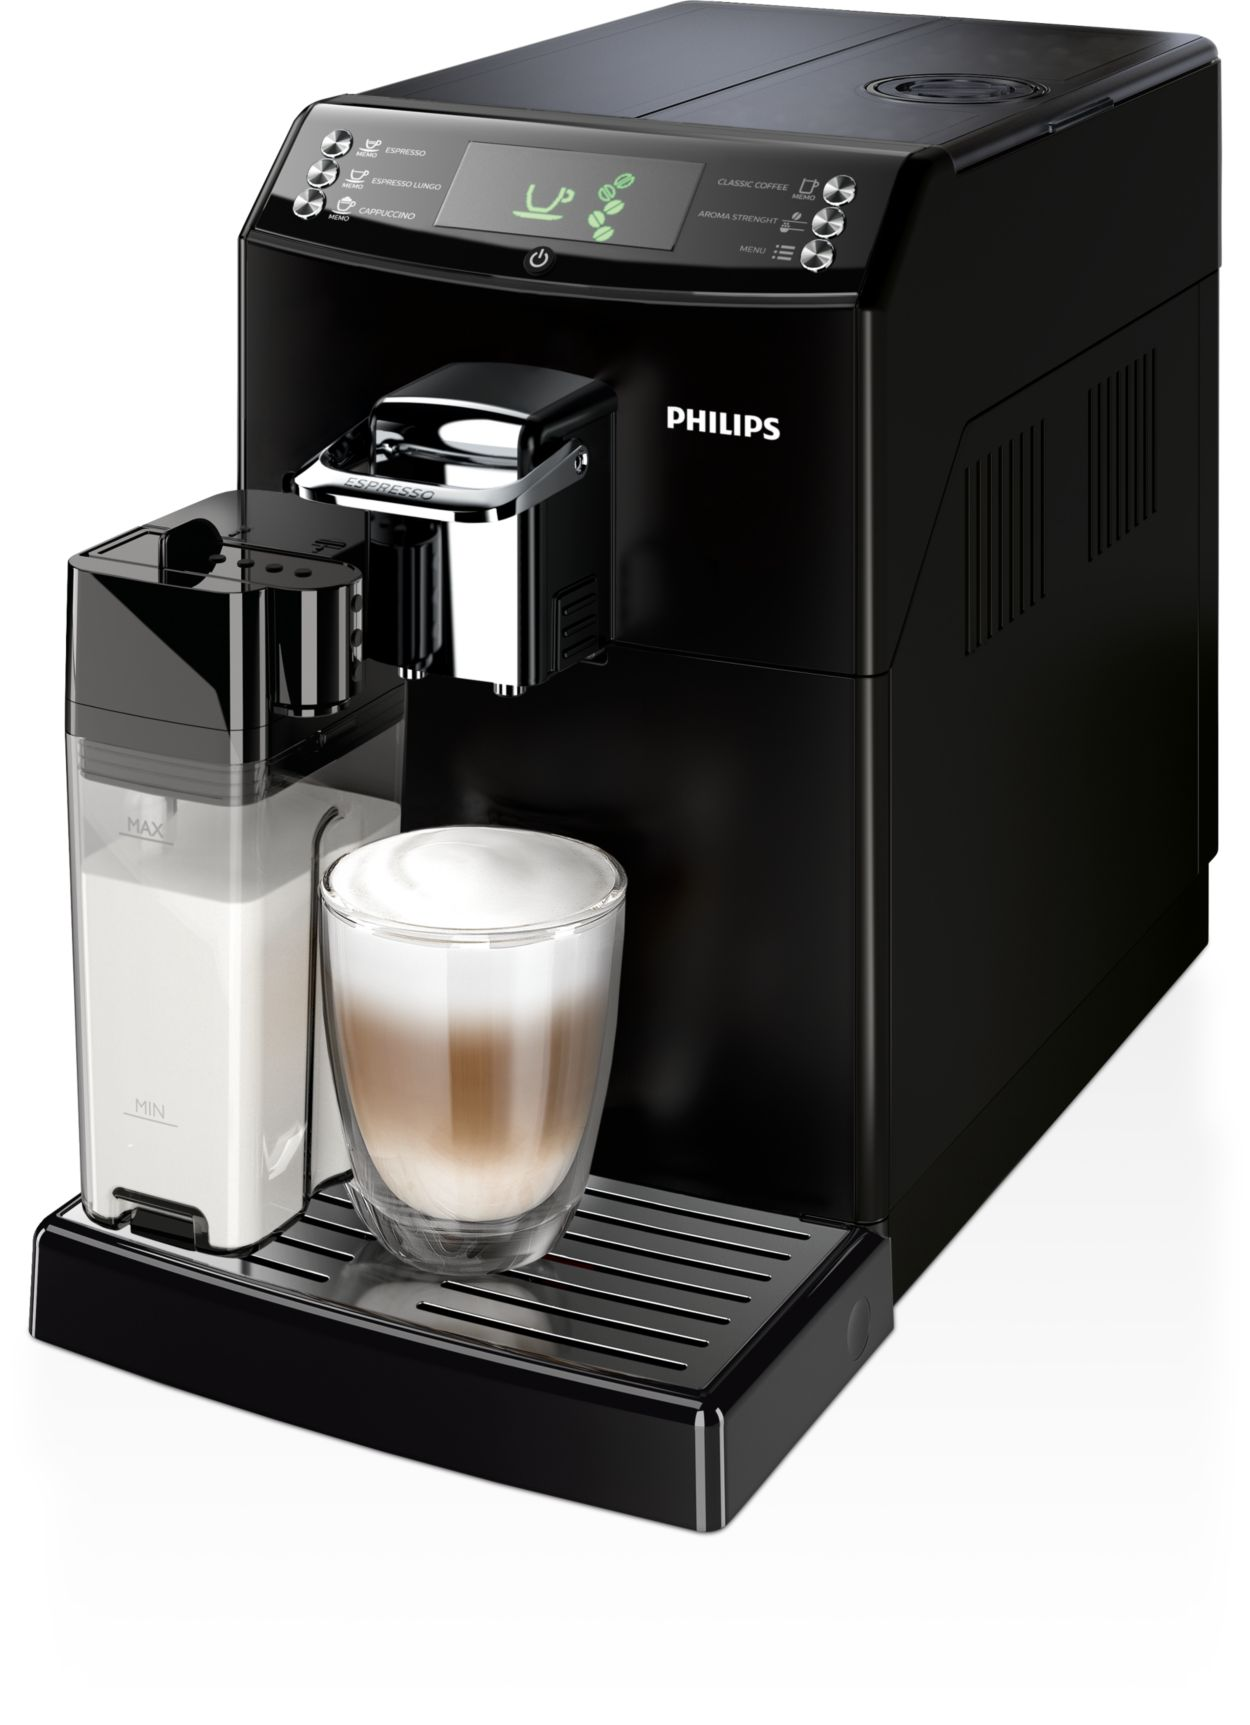 Electronic Real Coffee Machine 4000 series super automatic espresso machine hd884701 philips great and the real taste of filter coffee